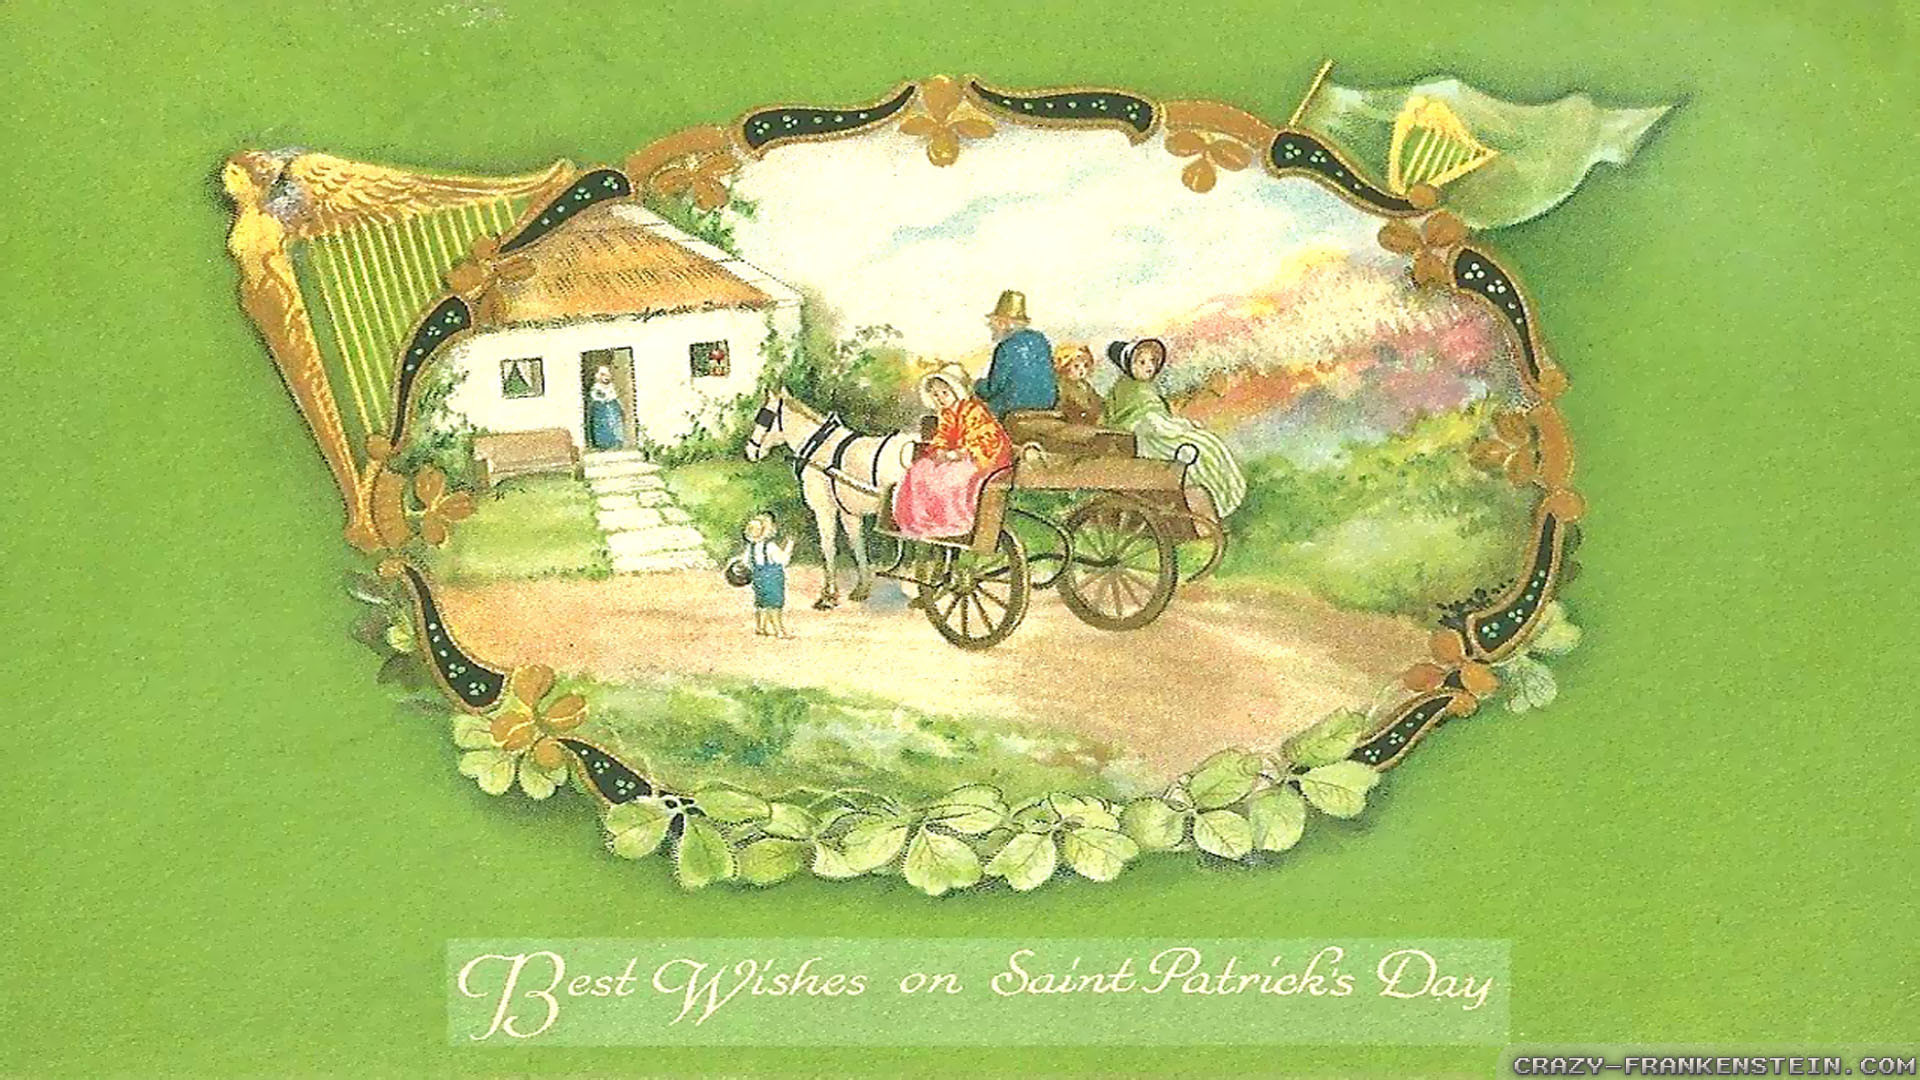 1920x1080 Wallpaper: Vintage Saint Patricks day cards wallpapers. Resolution:  1024x768 | 1280x1024 | 1600x1200. Widescreen Res: 1440x900 | 1680x1050 |  1920x1200